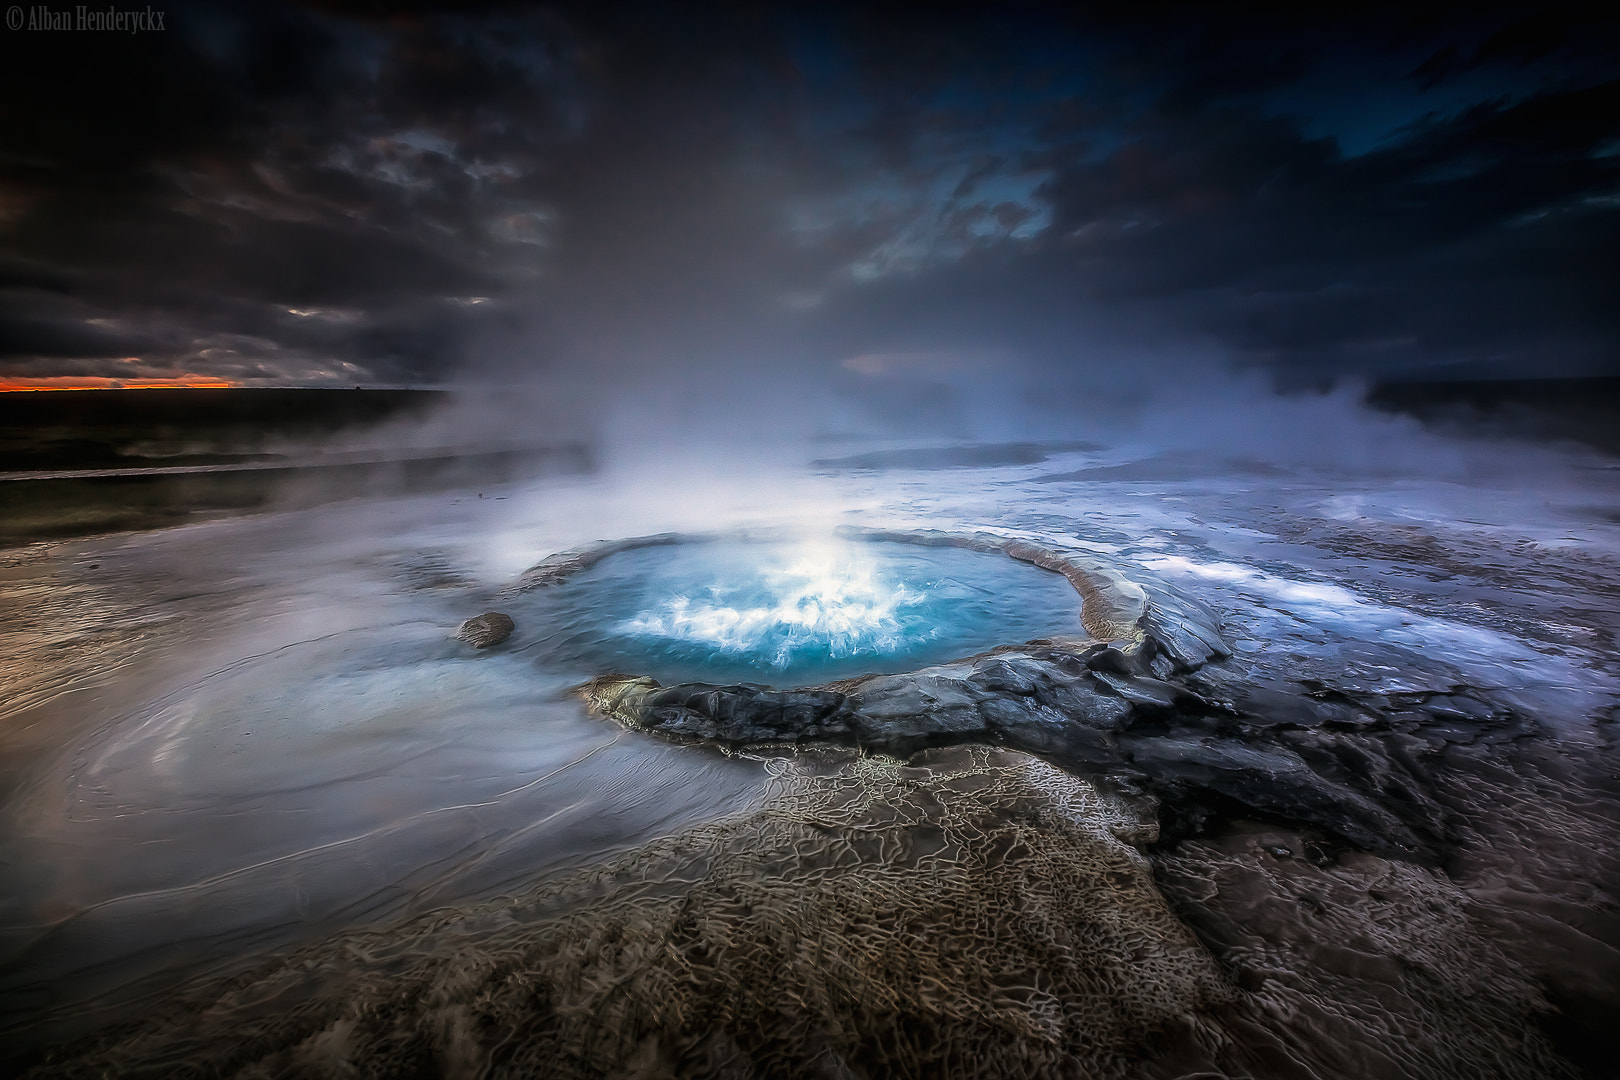 Photograph Dark Blow by Alban Henderyckx on 500px